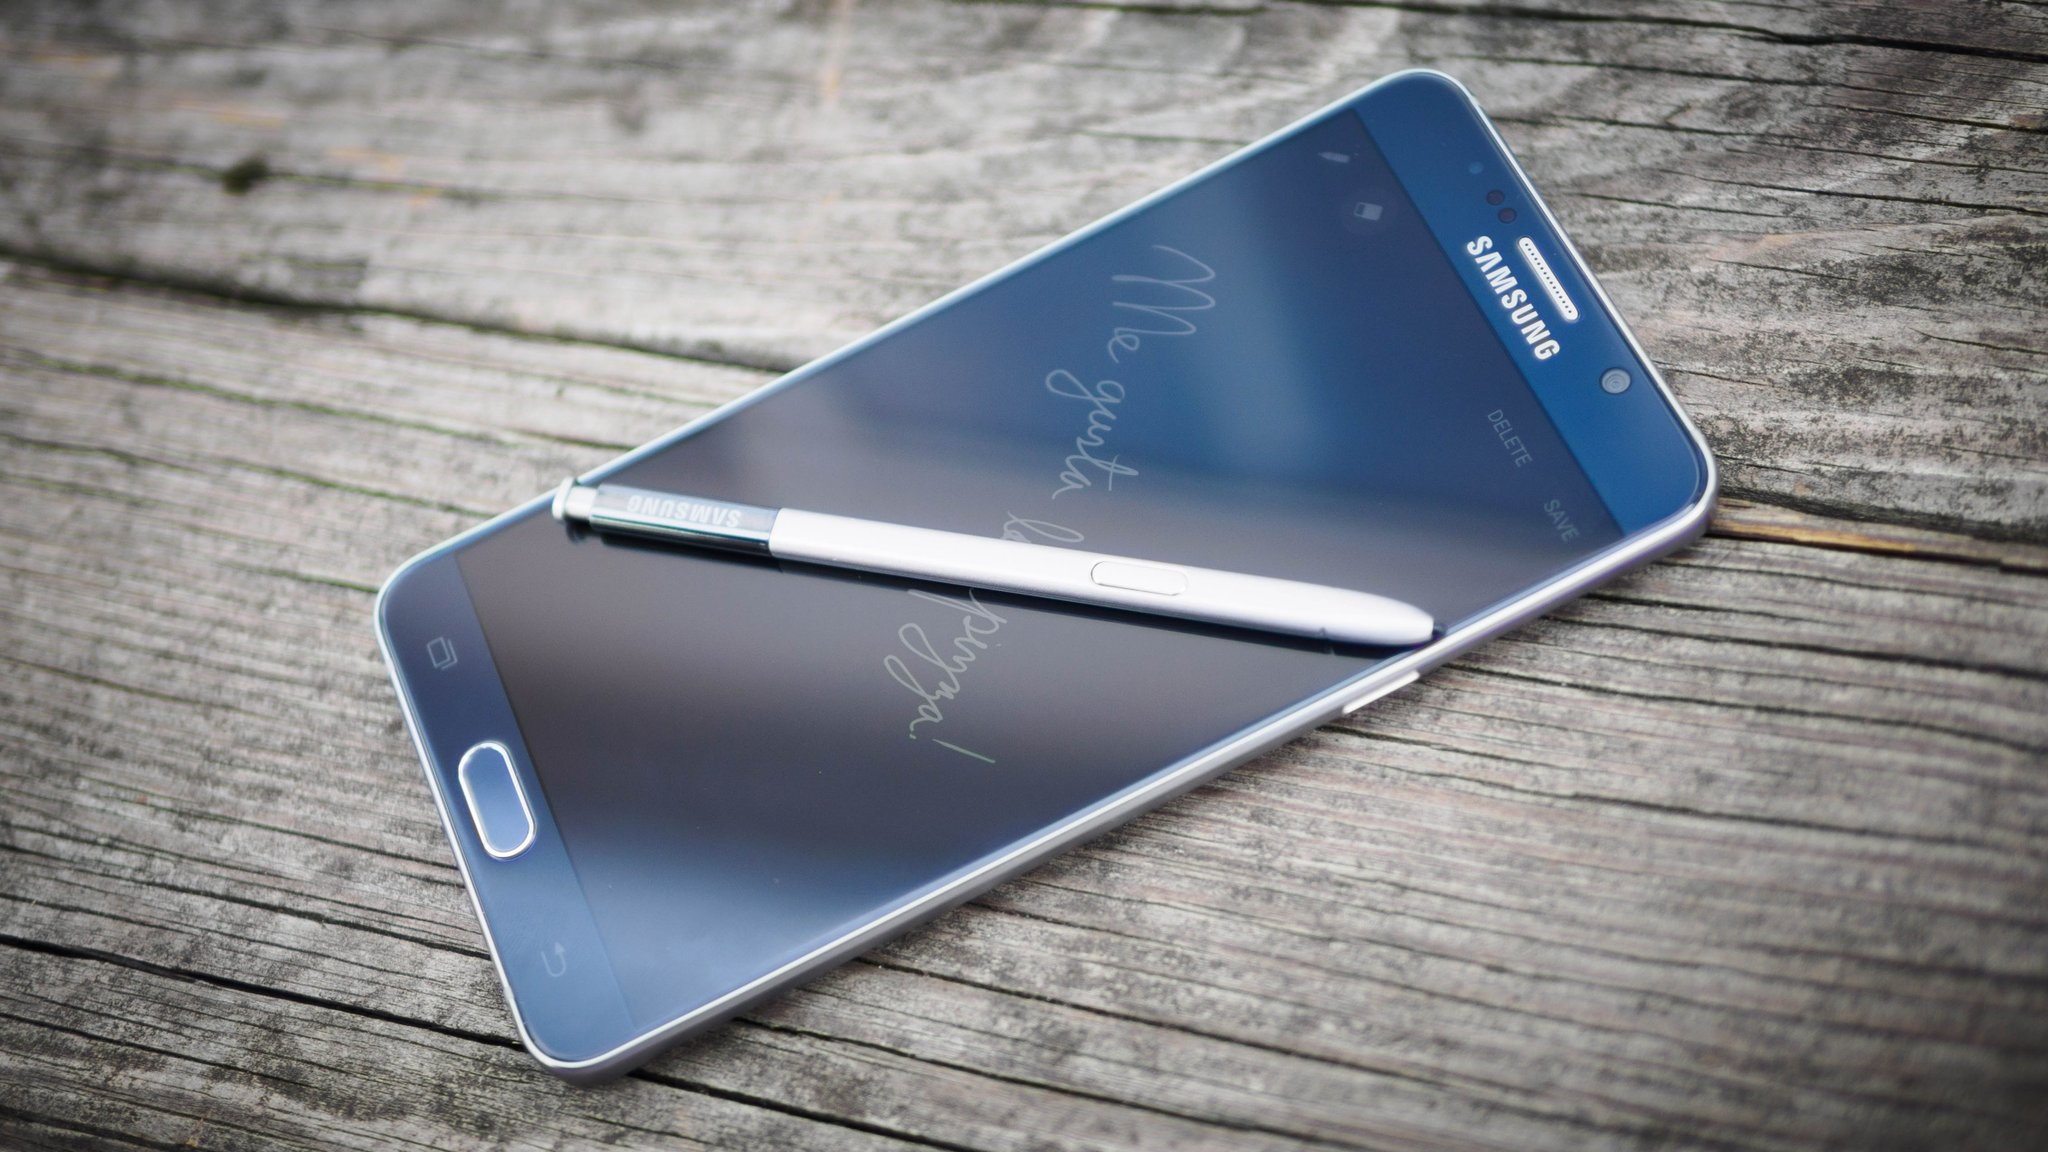 RT @TheNextWeb: Samsung Galaxy Note 5 Review: Fashion, function and a battery that actually lasts http://t.co/Q84L2GdOcN http://t.co/Q2gqR6…